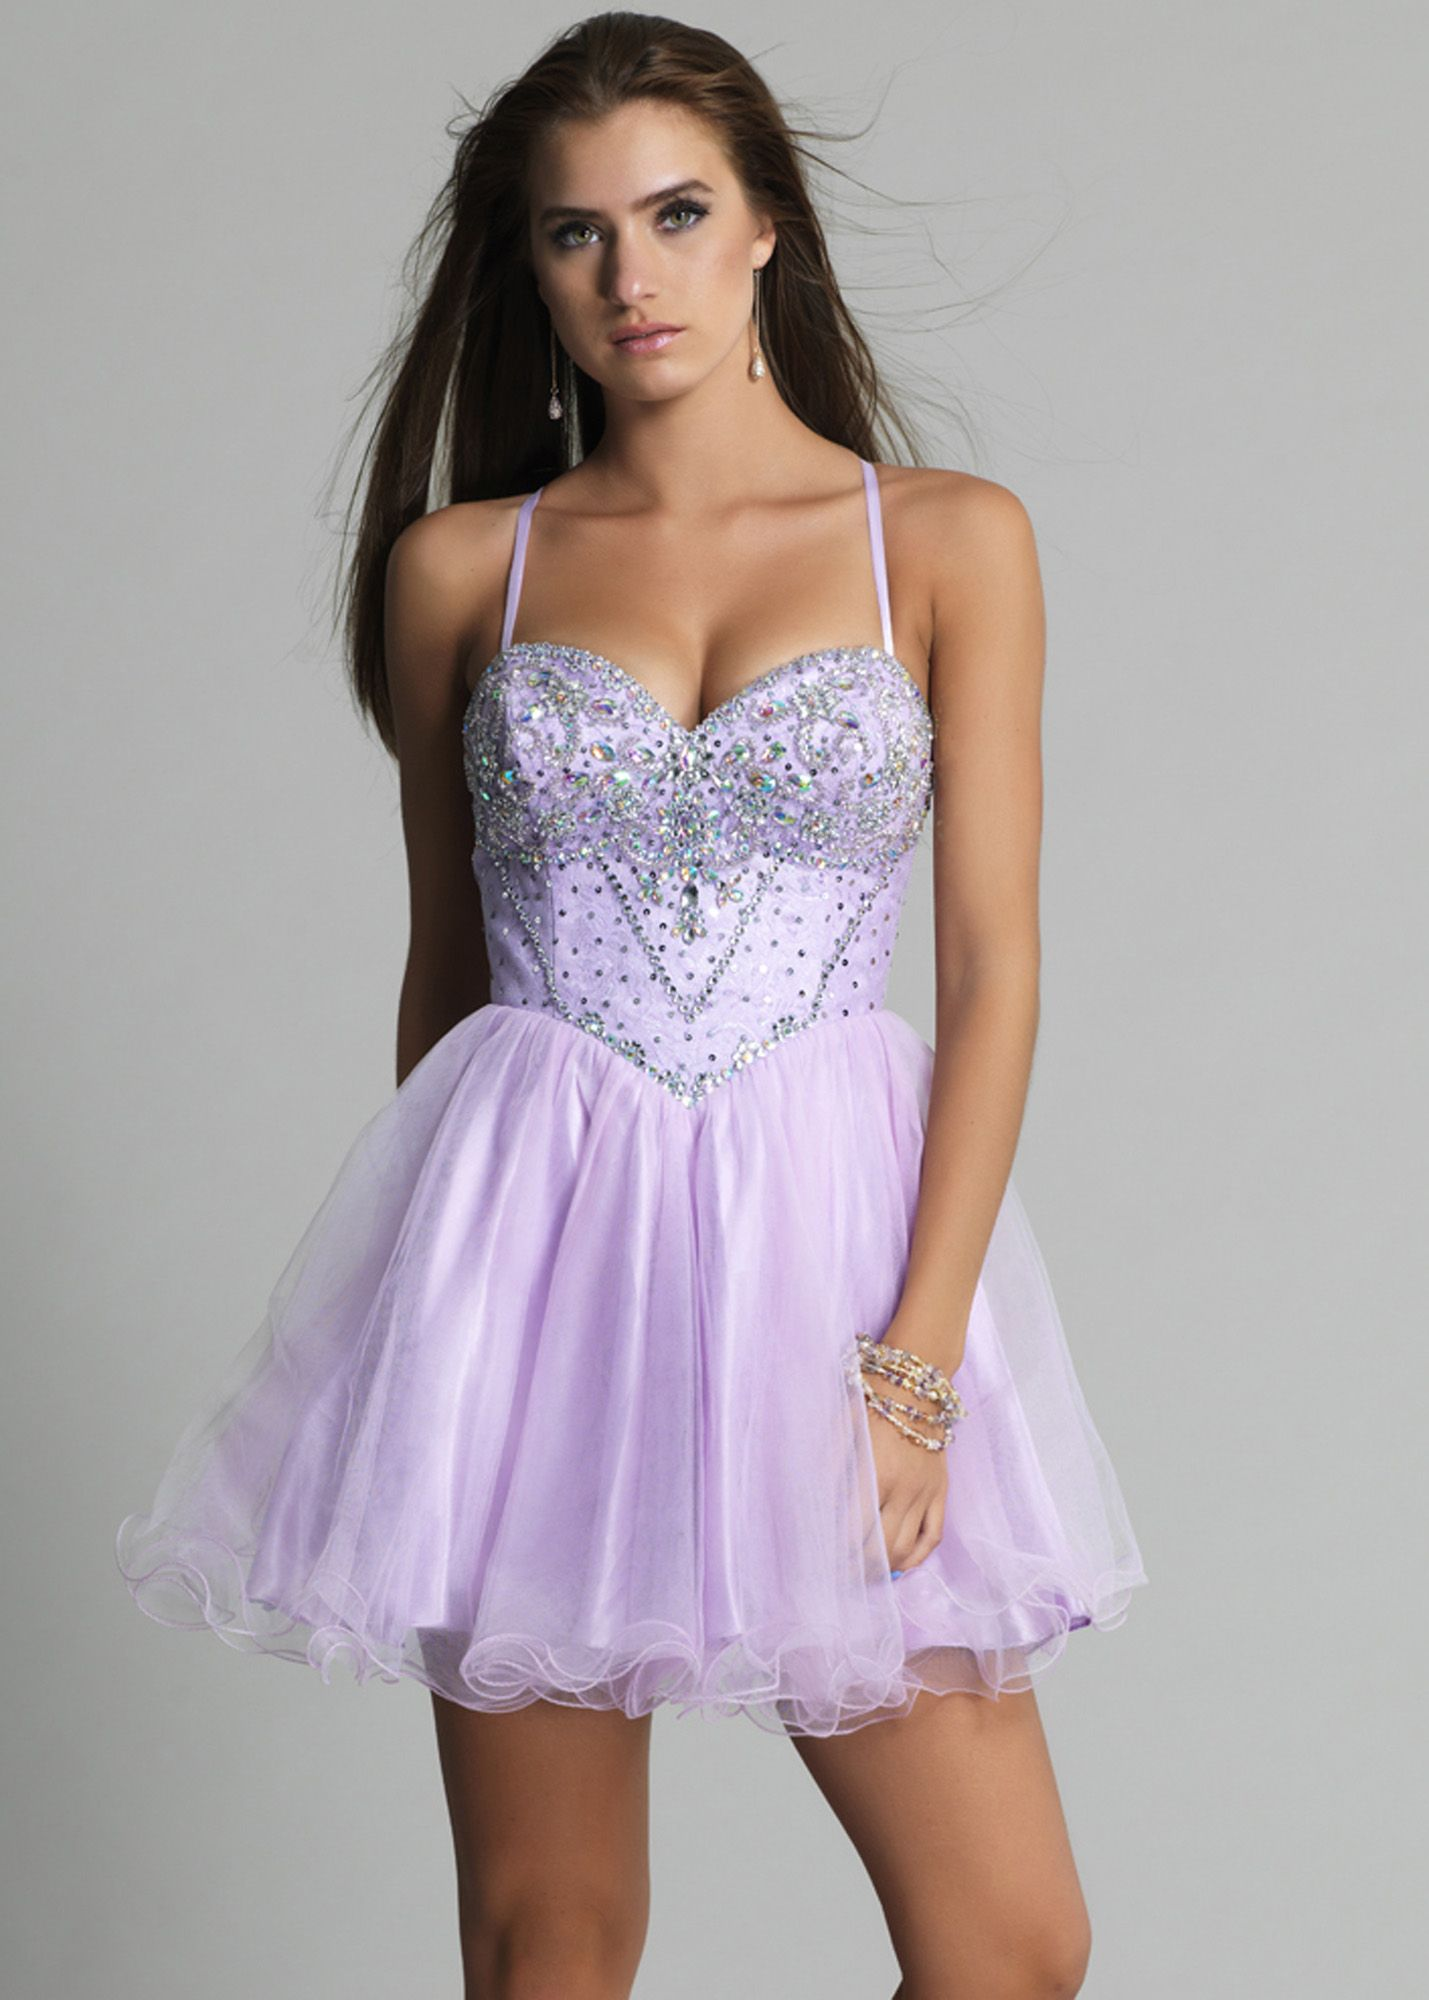 Dave u johnny lilac beaded tulle prom dresses online dresses